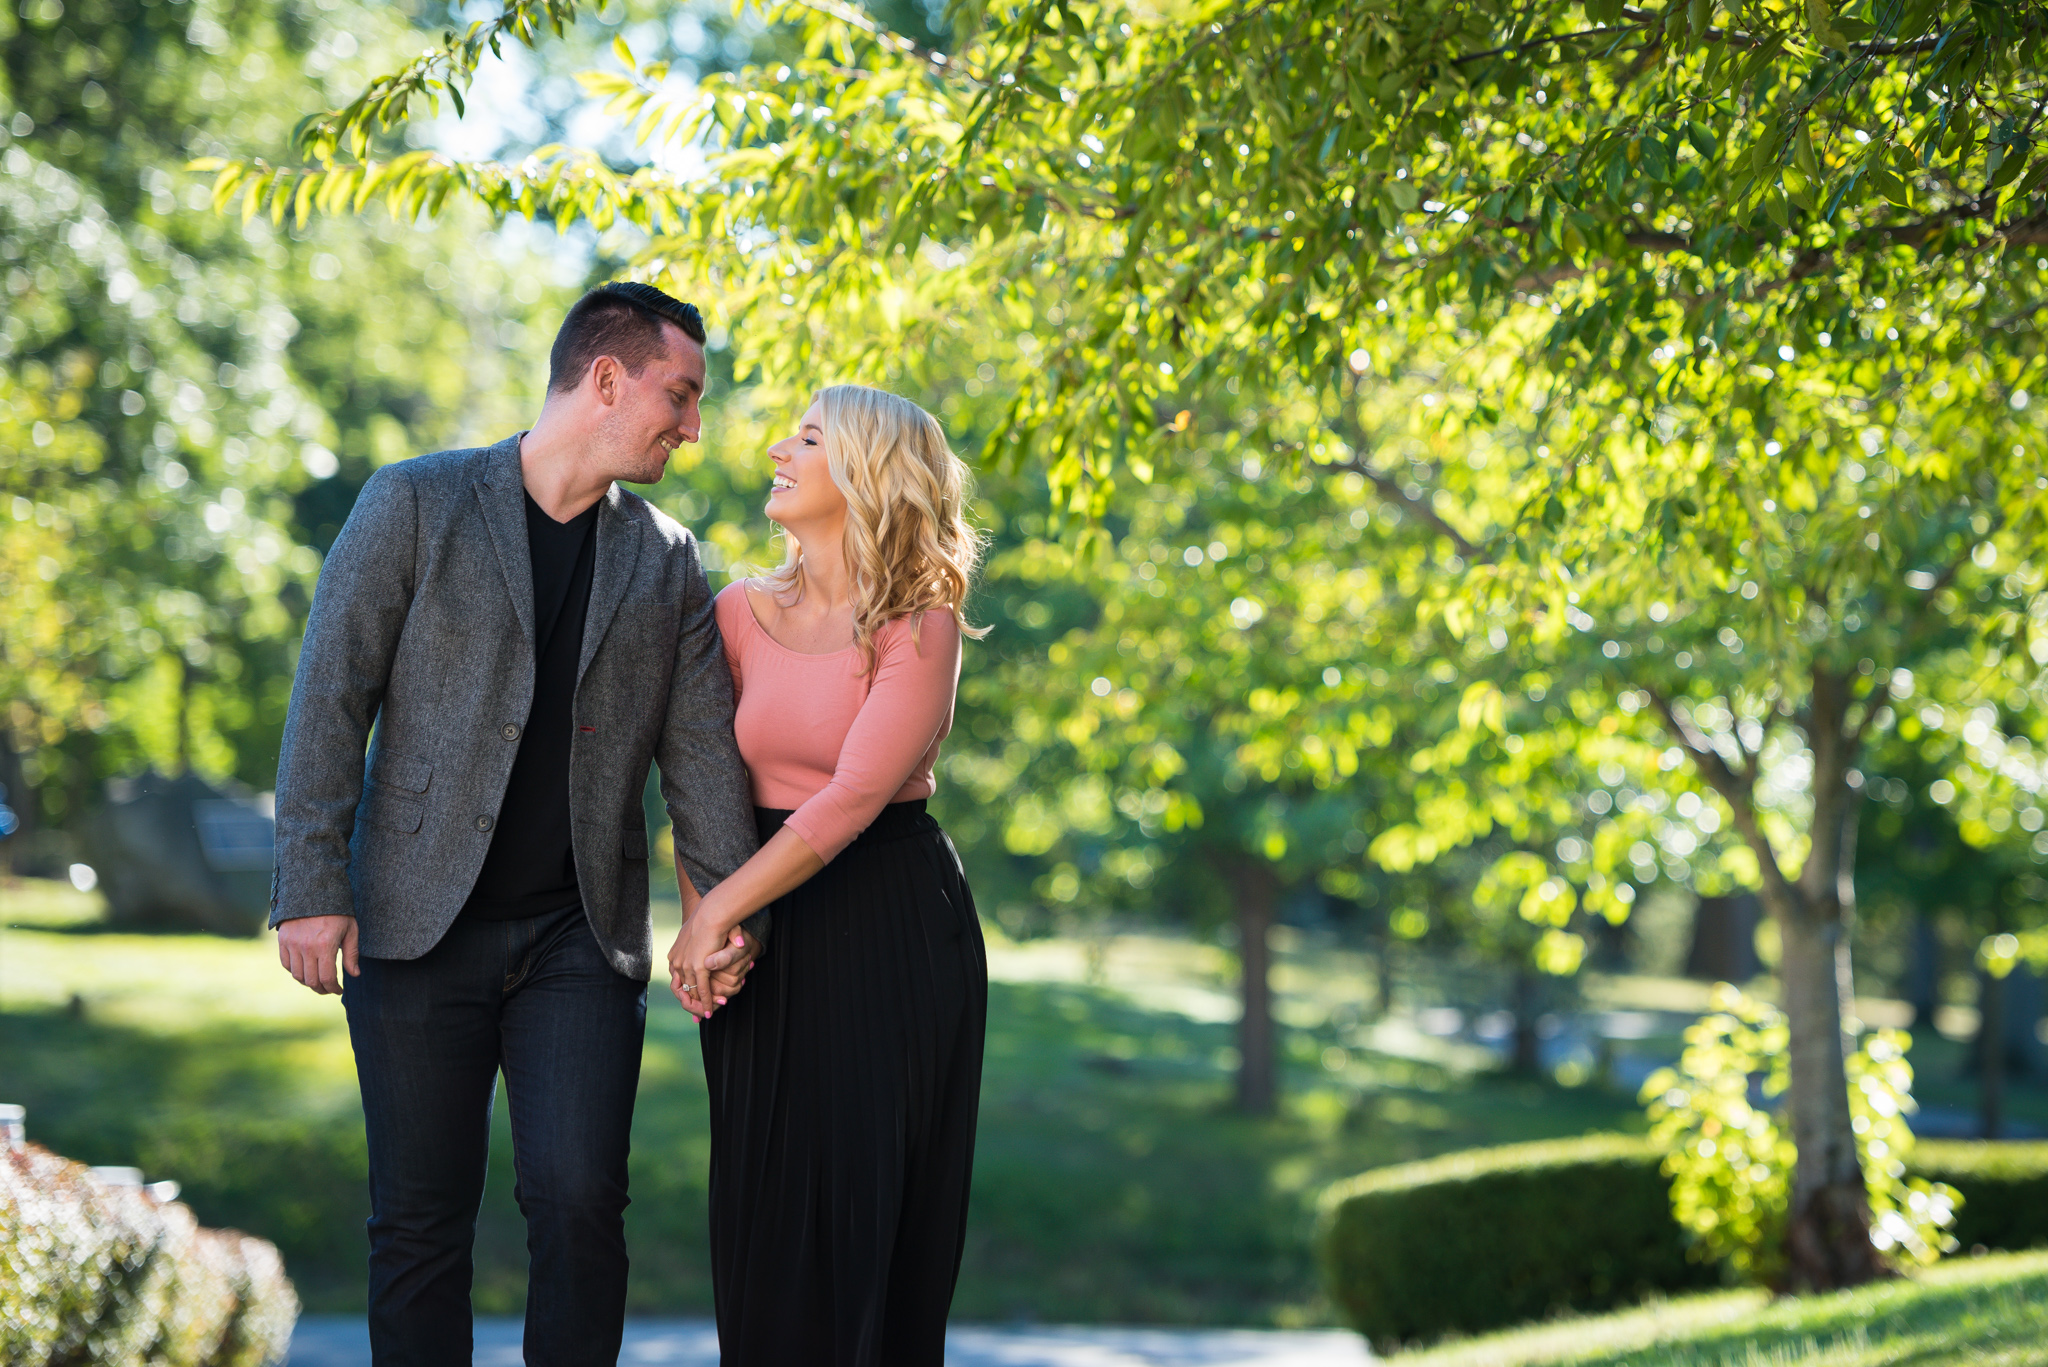 Mindy-Engagement-photography-wedding-photographer-northeast-PA-Scranton-Poconos-4.jpg